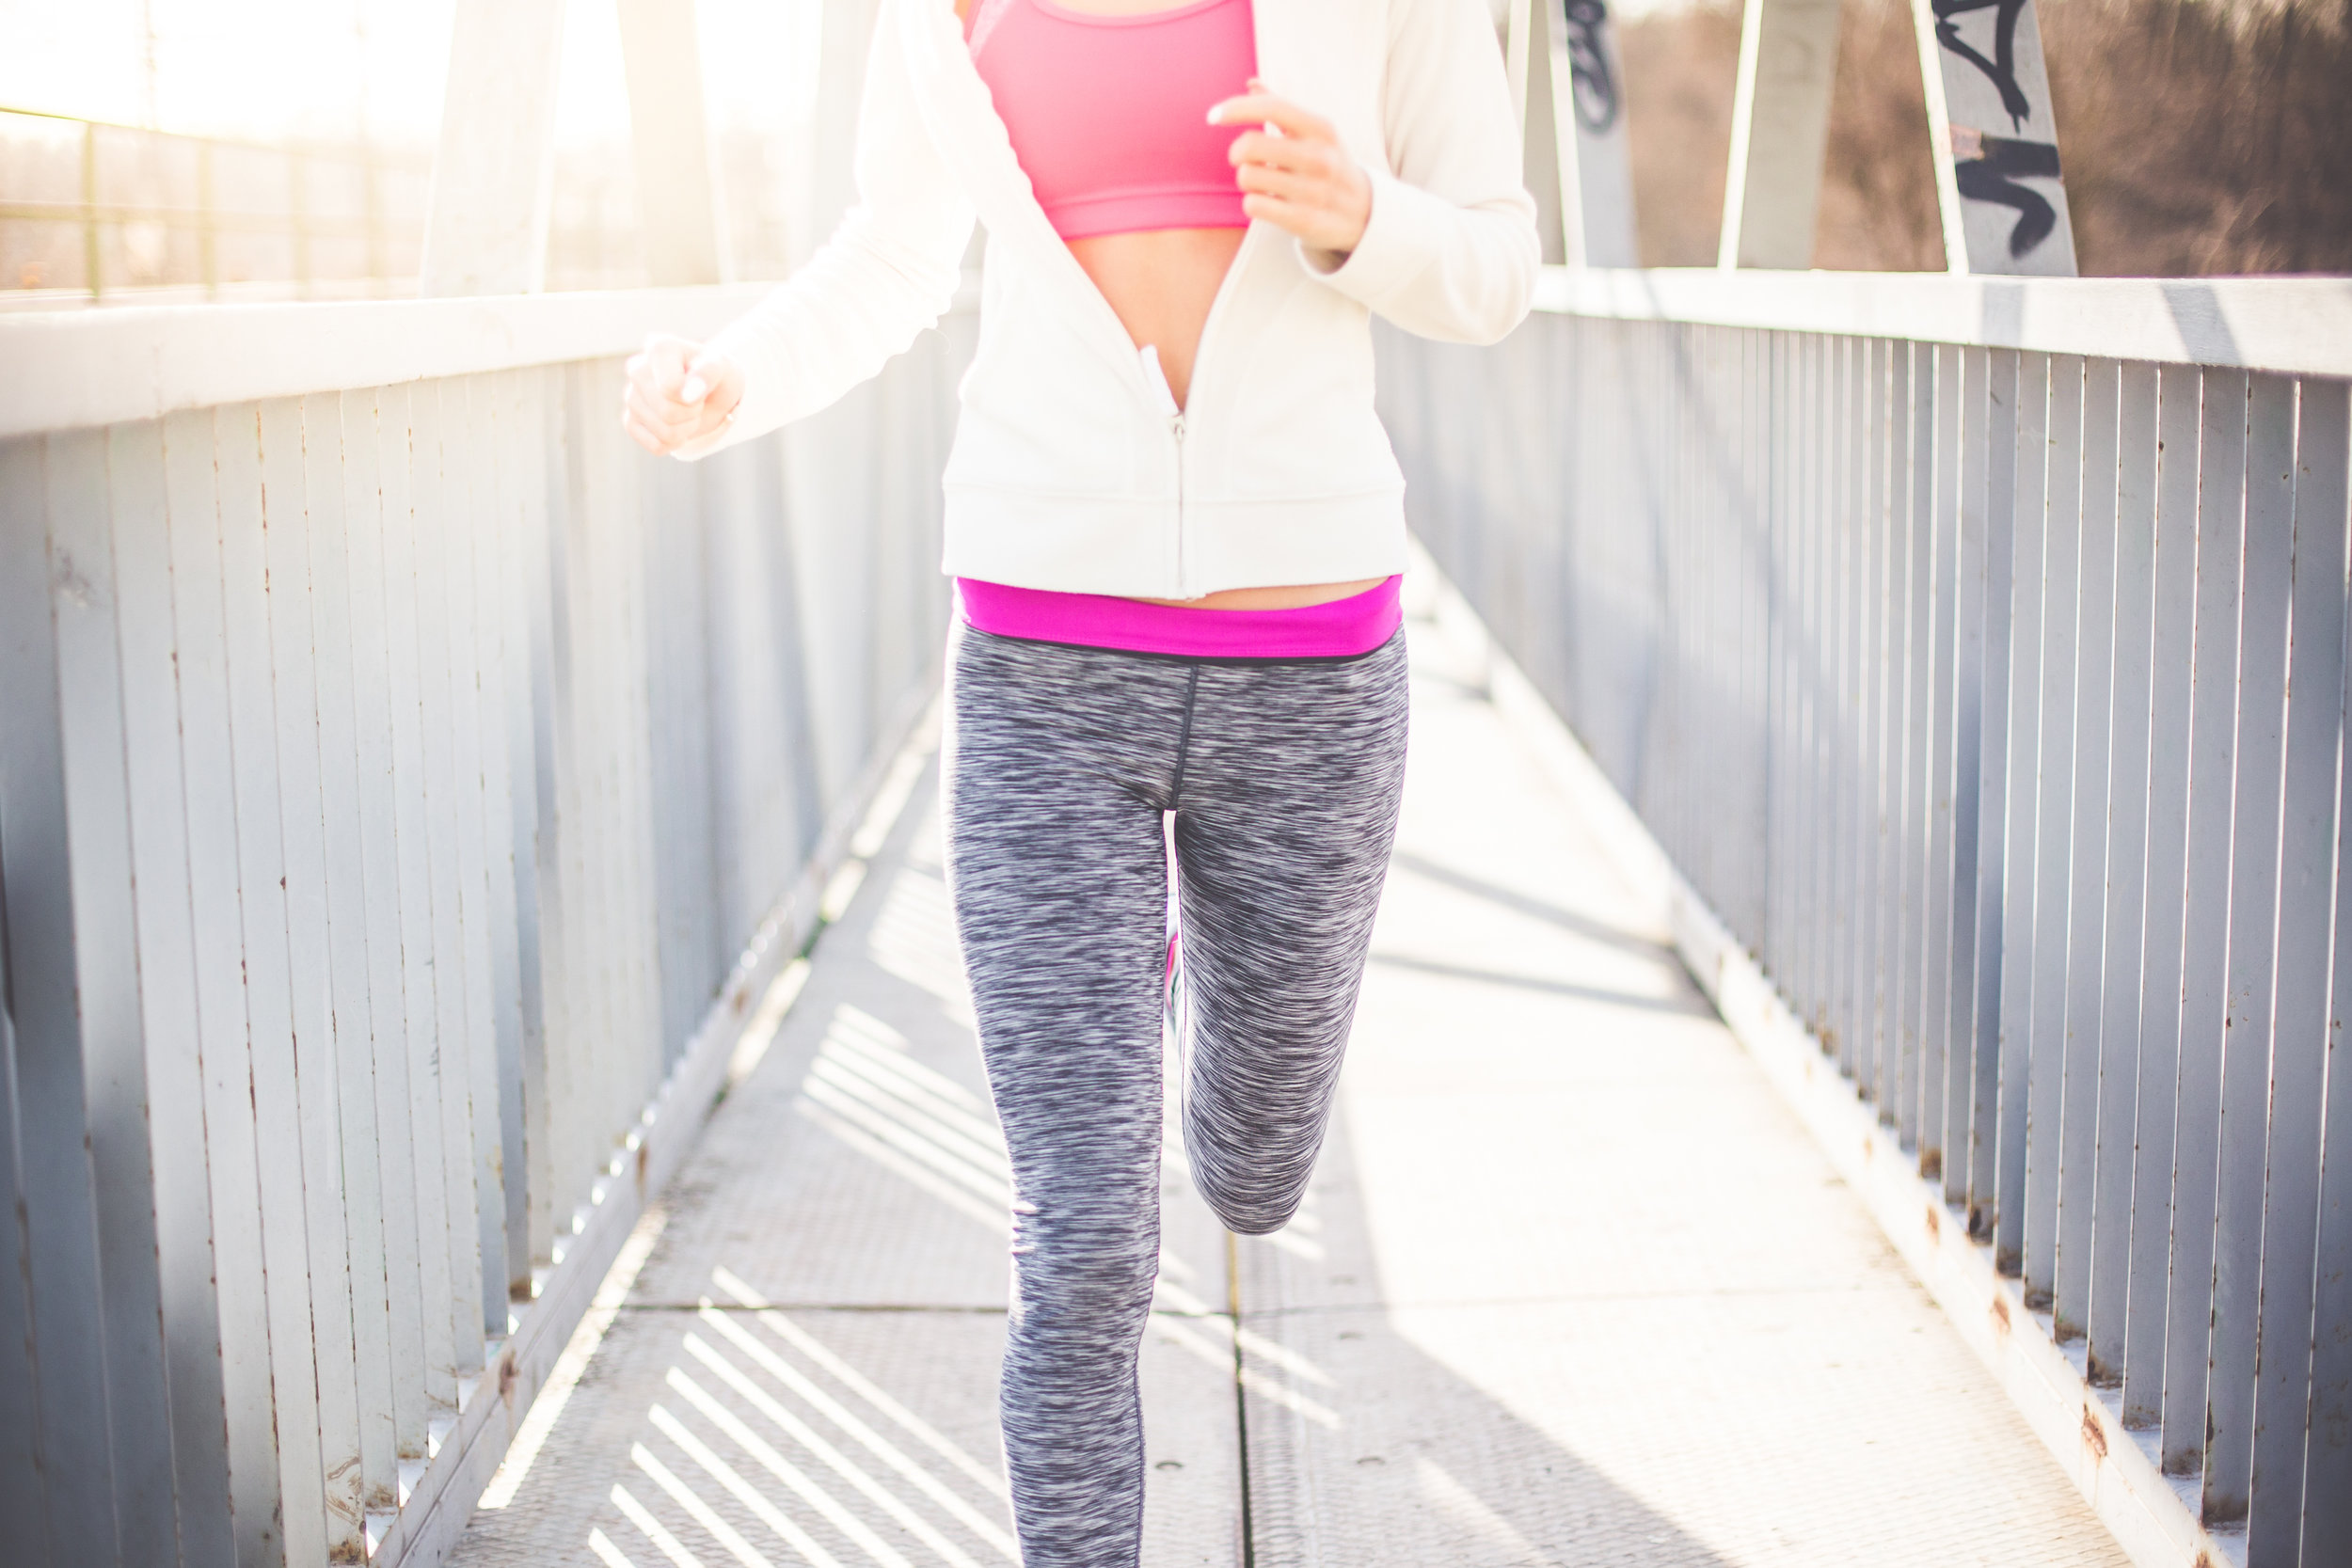 fitness-girl-jogging-morning-run-picjumbo-com.jpg